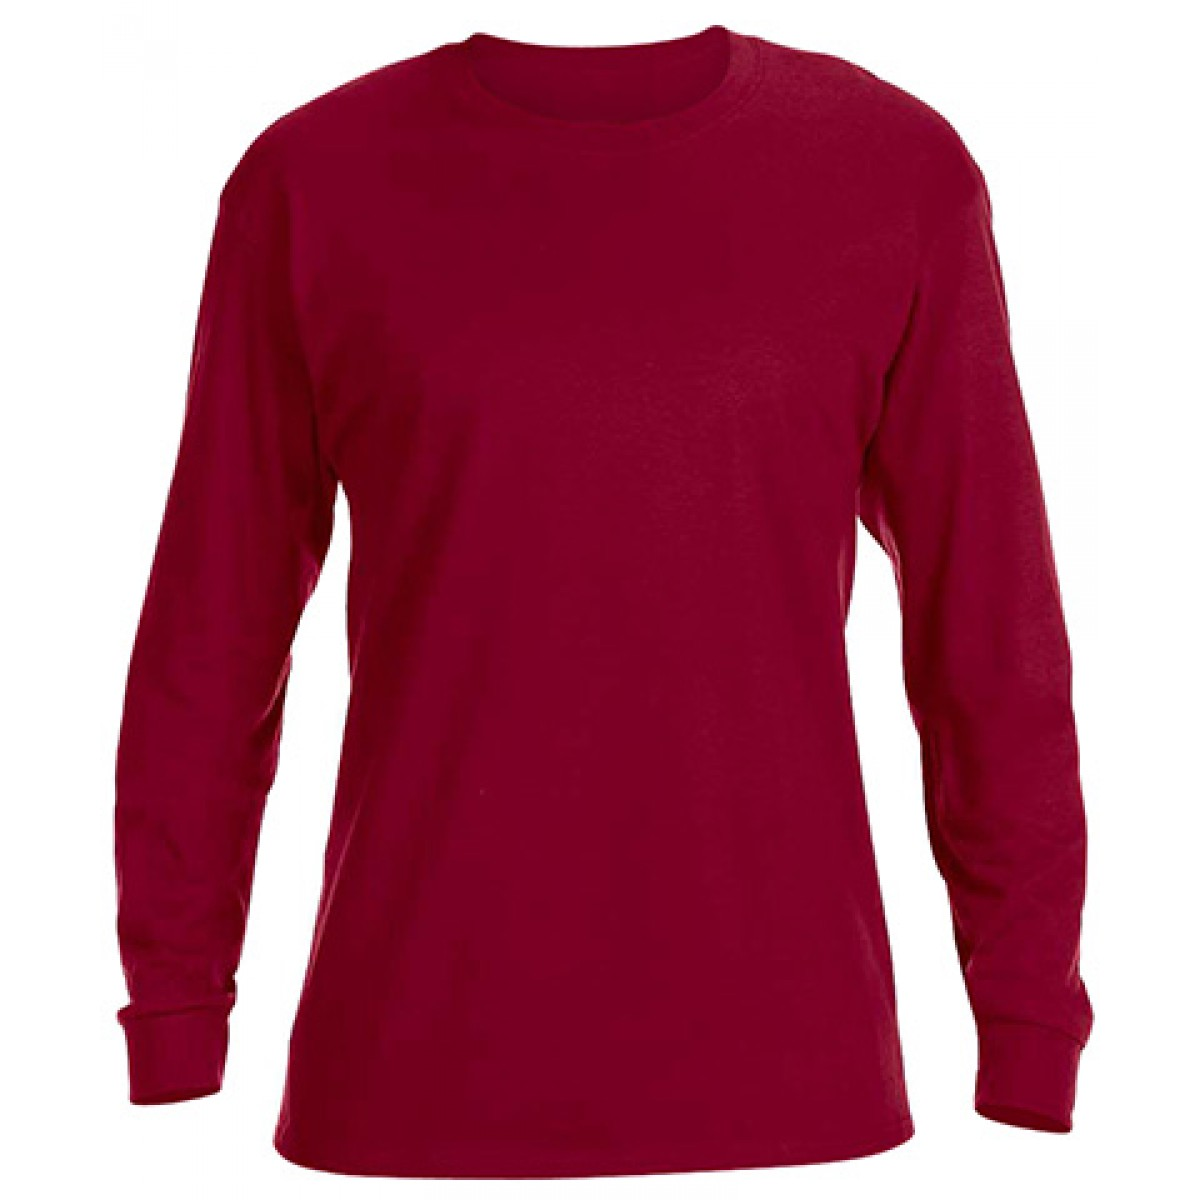 Basic Long Sleeve Crew Neck -Cardinal Red-YL